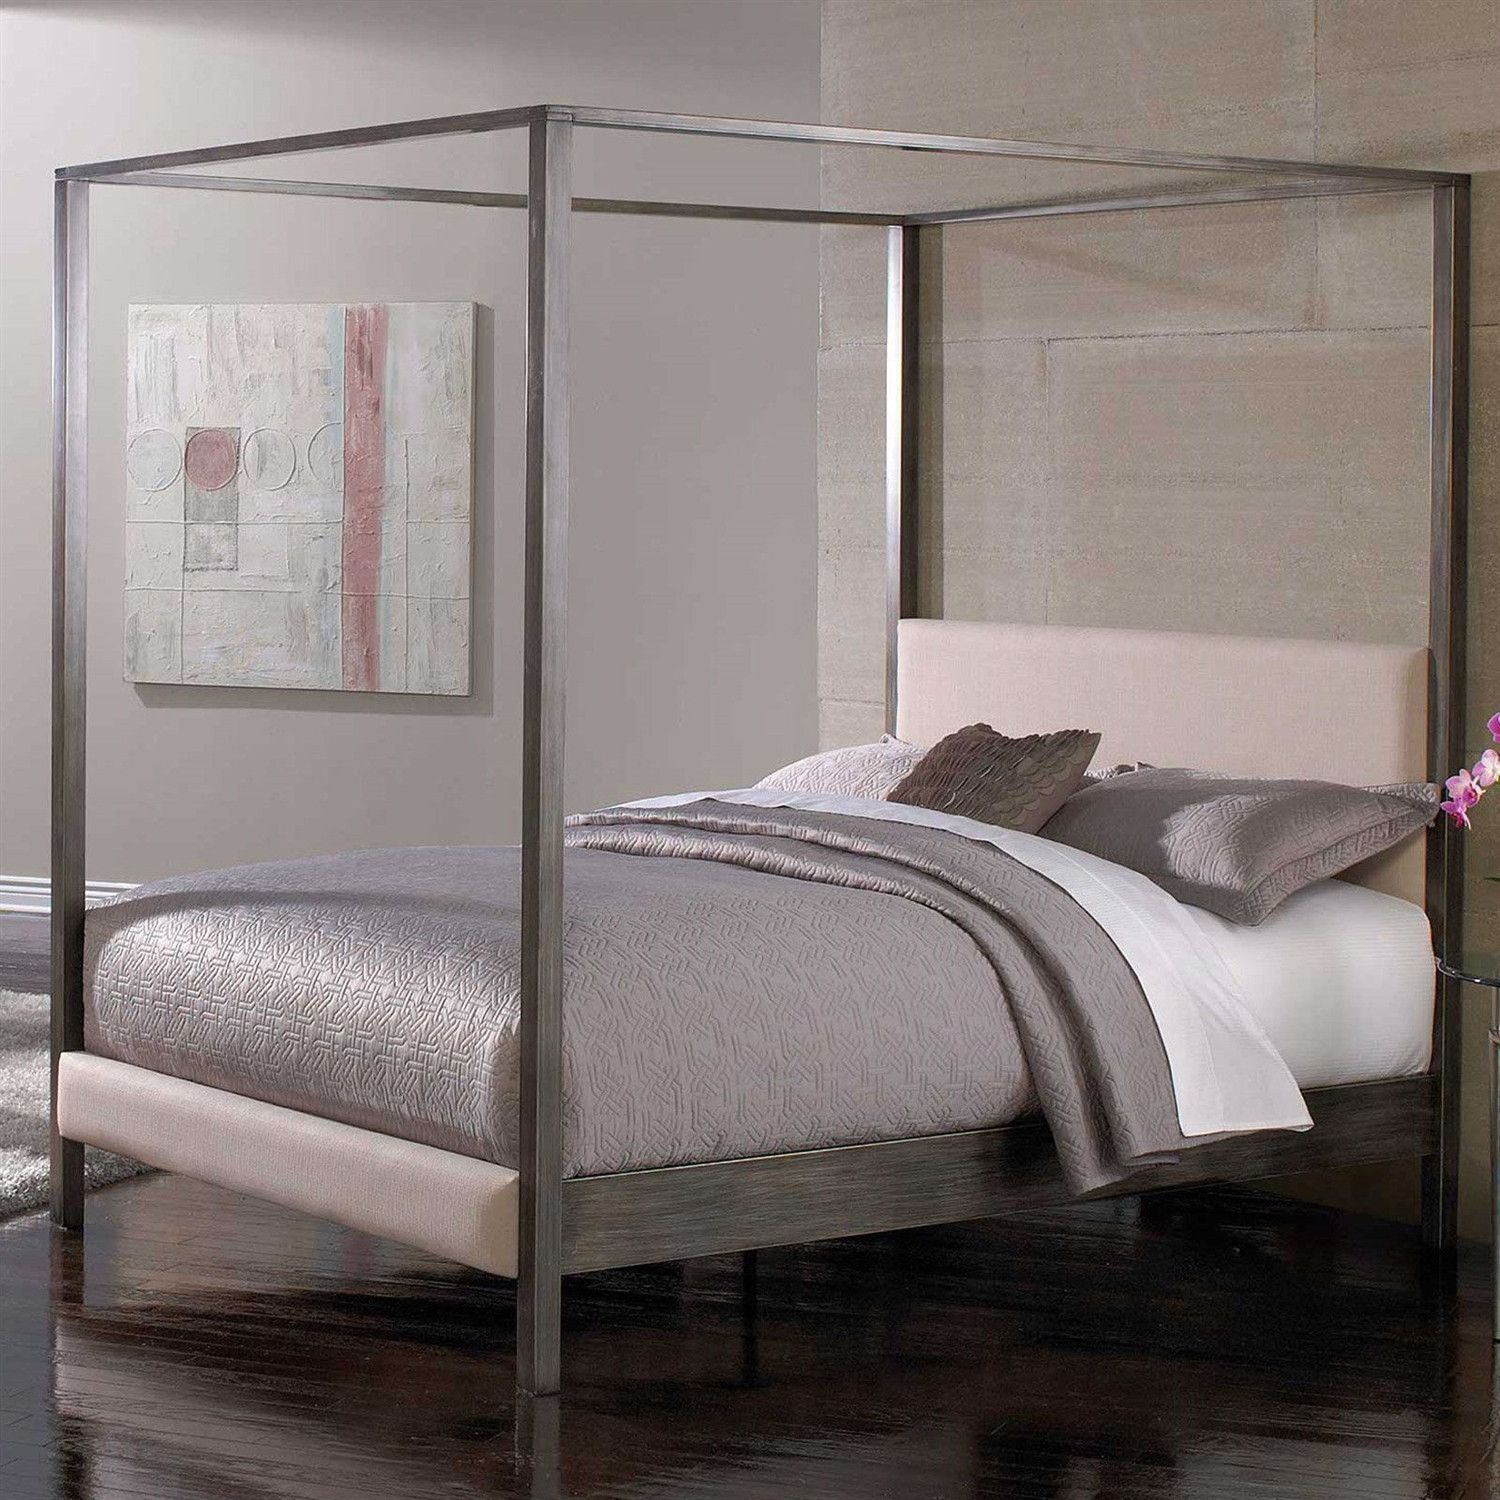 Queen Size Modern Metal Platform Canopy Bed Frame With Upholstered